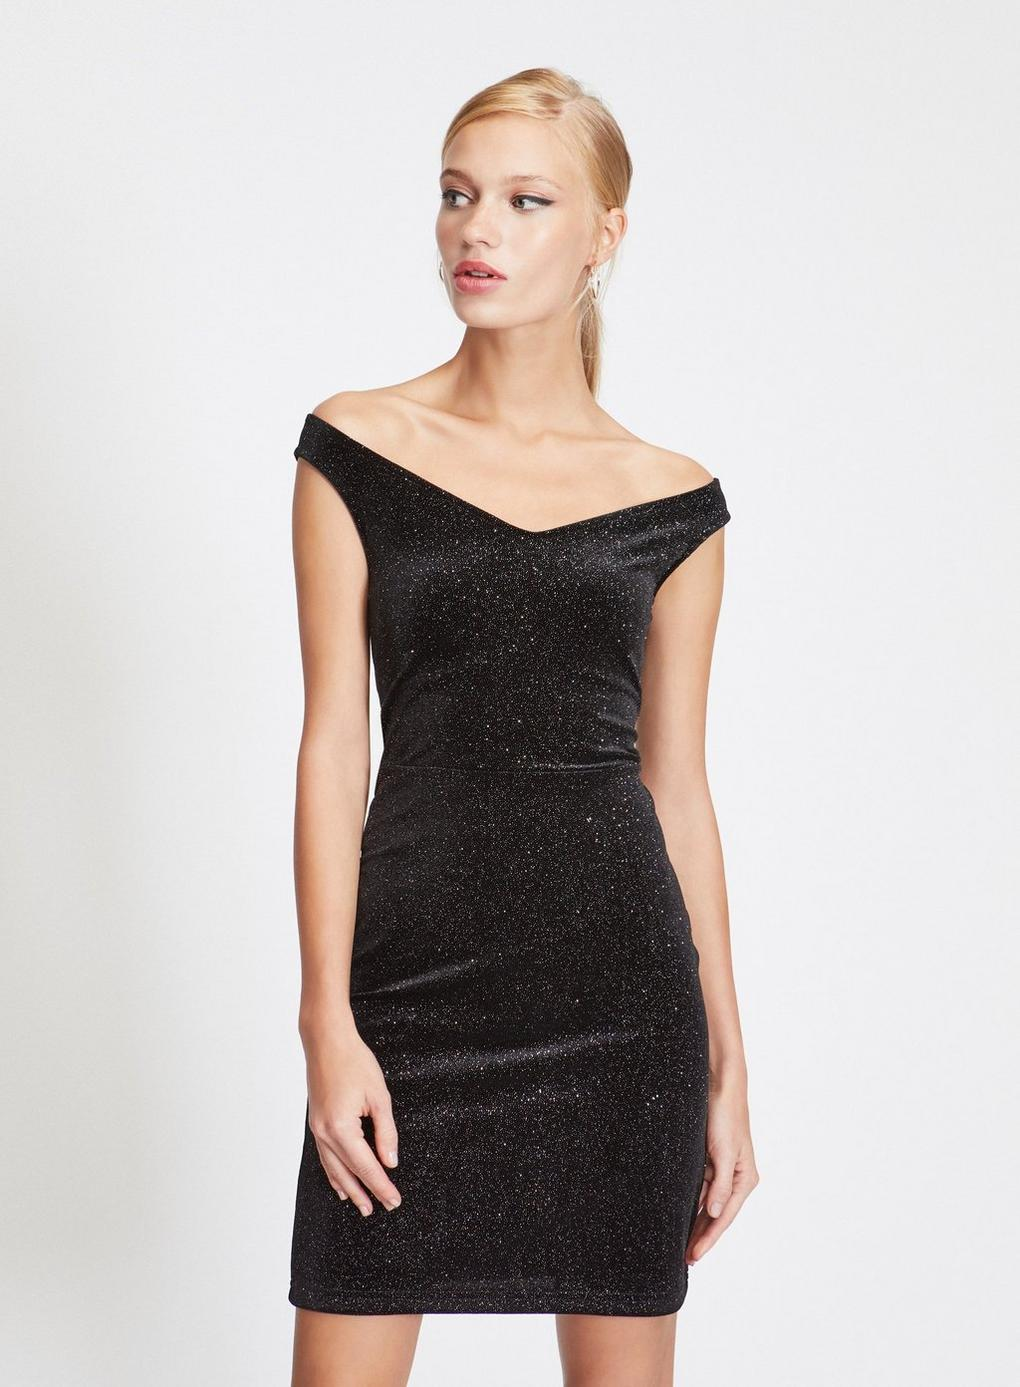 f3ee49352e Lyst - Miss Selfridge Black Glitter Bardot Dress in Black